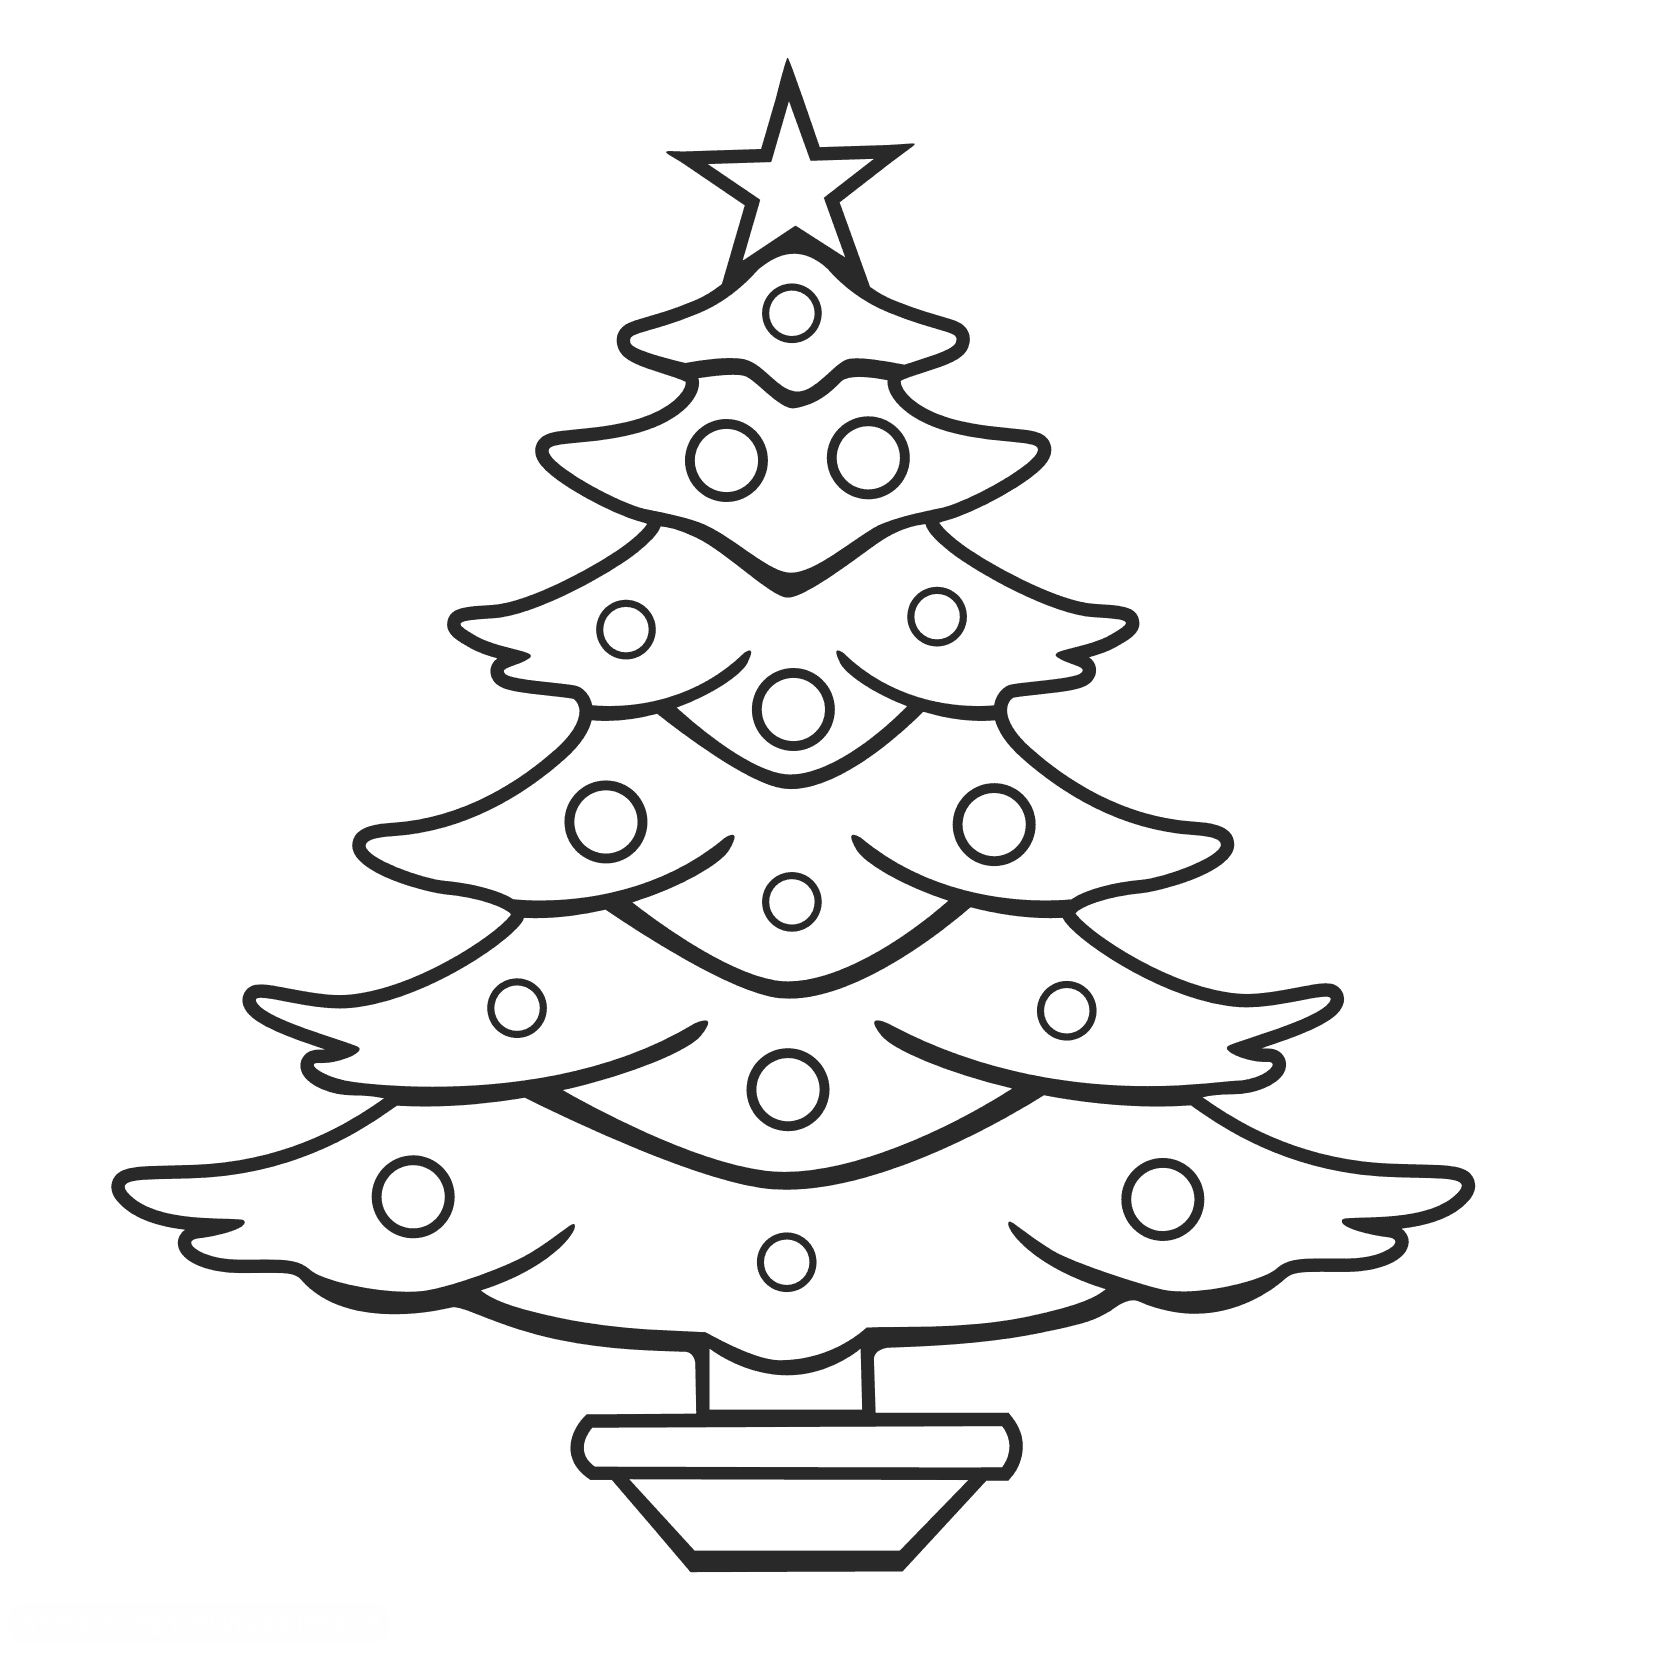 Xmas Tree Coloring Pages Christmas Tree Drawing Christmas Tree Coloring Page Tree Coloring Page